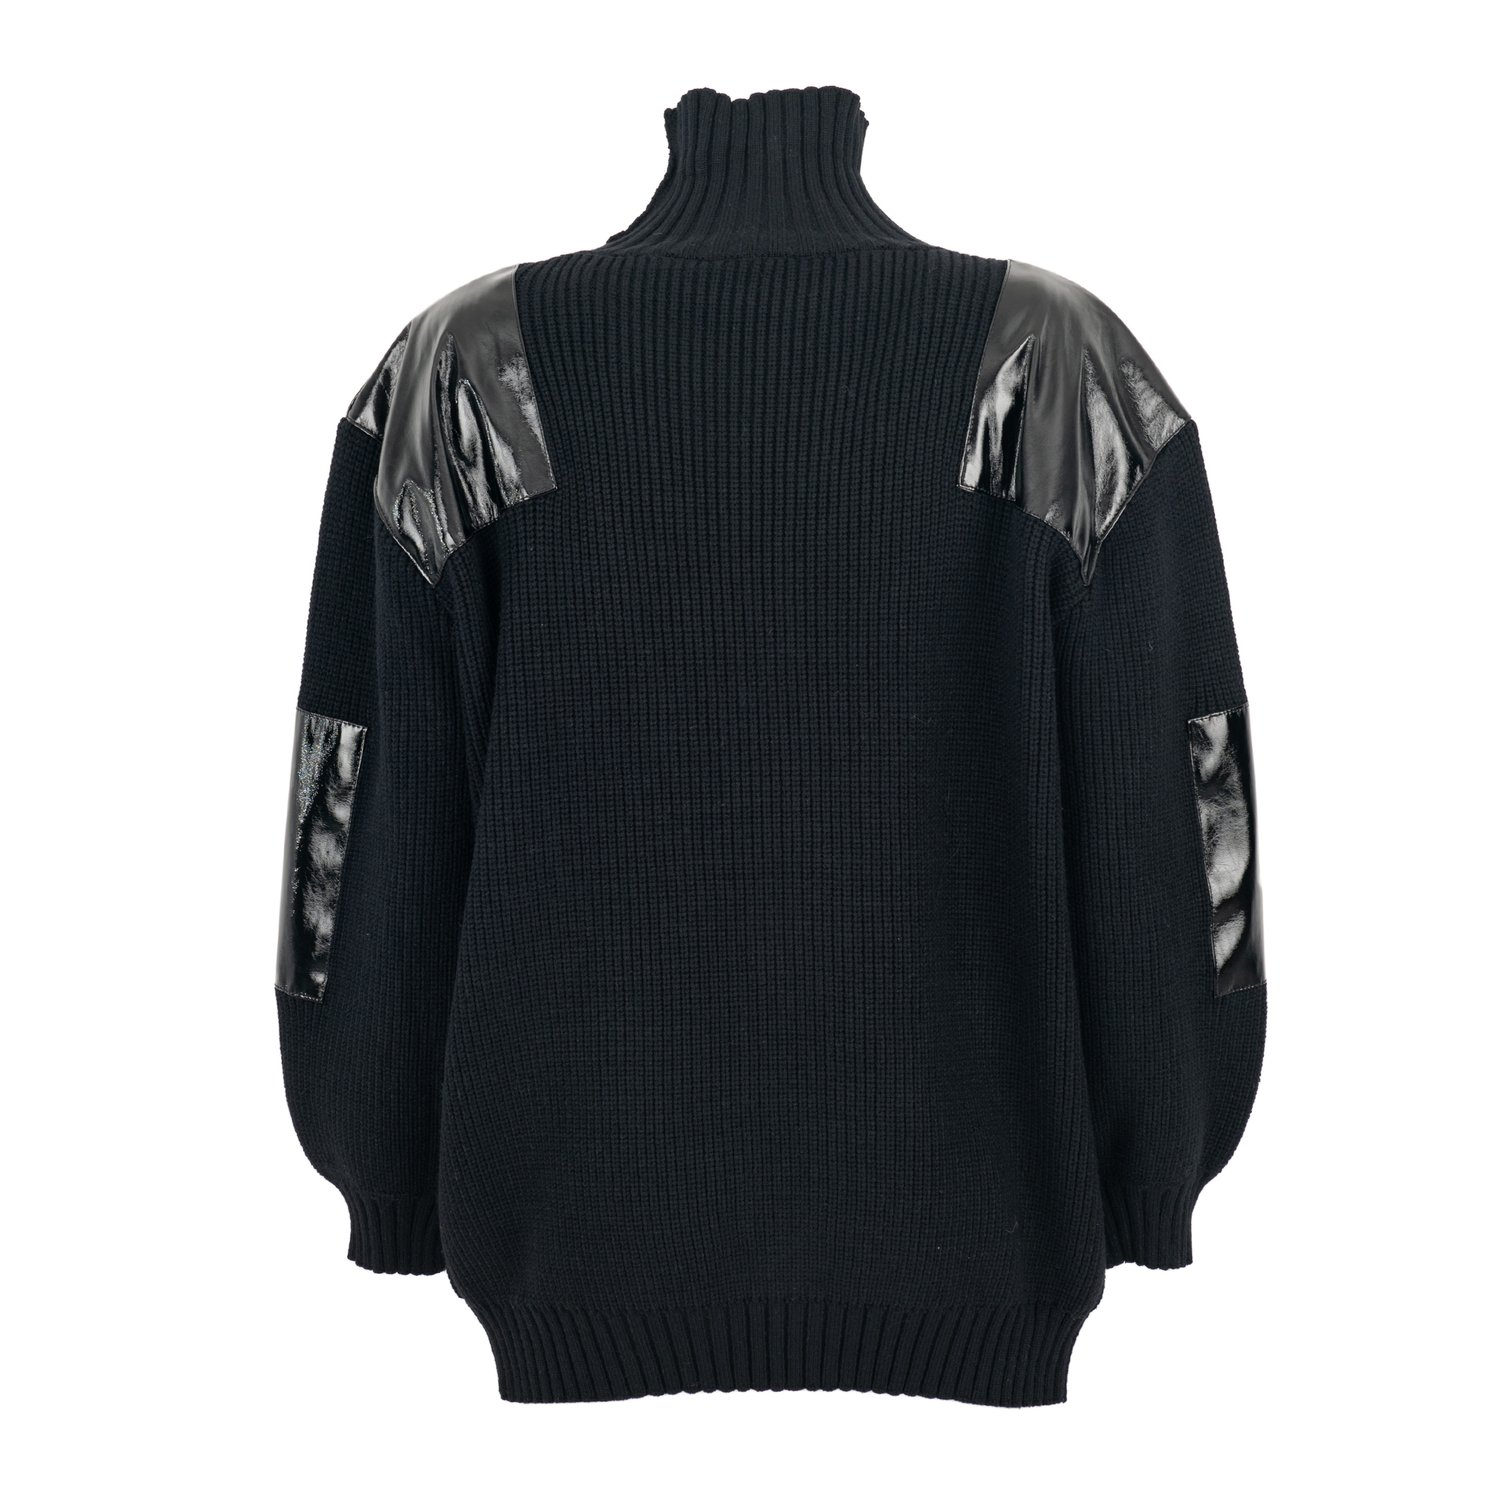 Picture of Tpn | Vynil Turtleneck Sweater